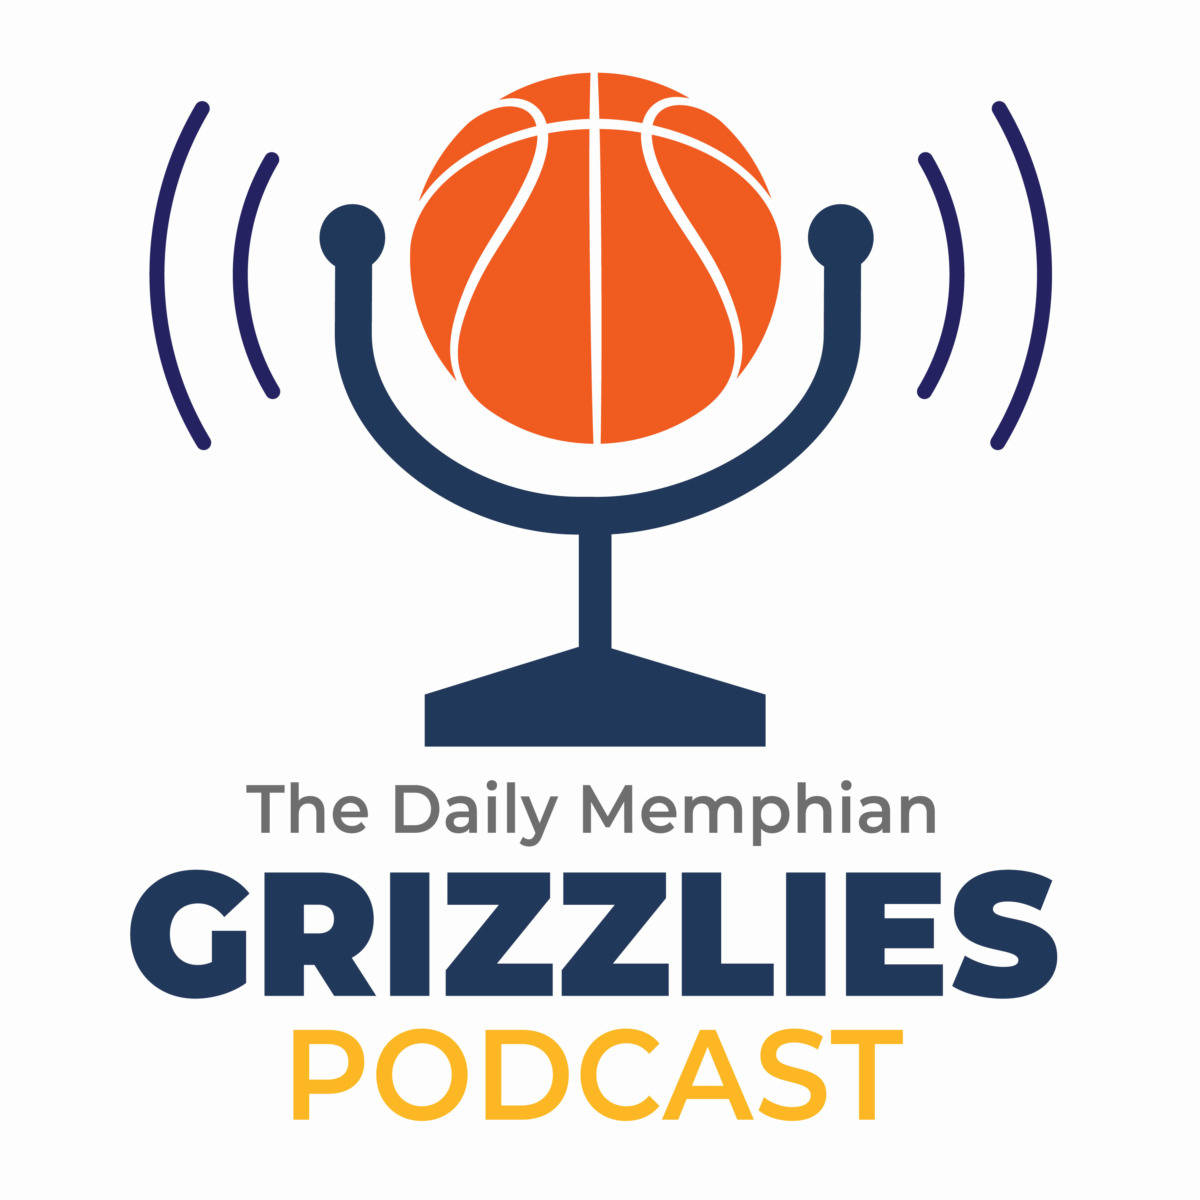 Grizzlies Podcast: Management and coaching questions with